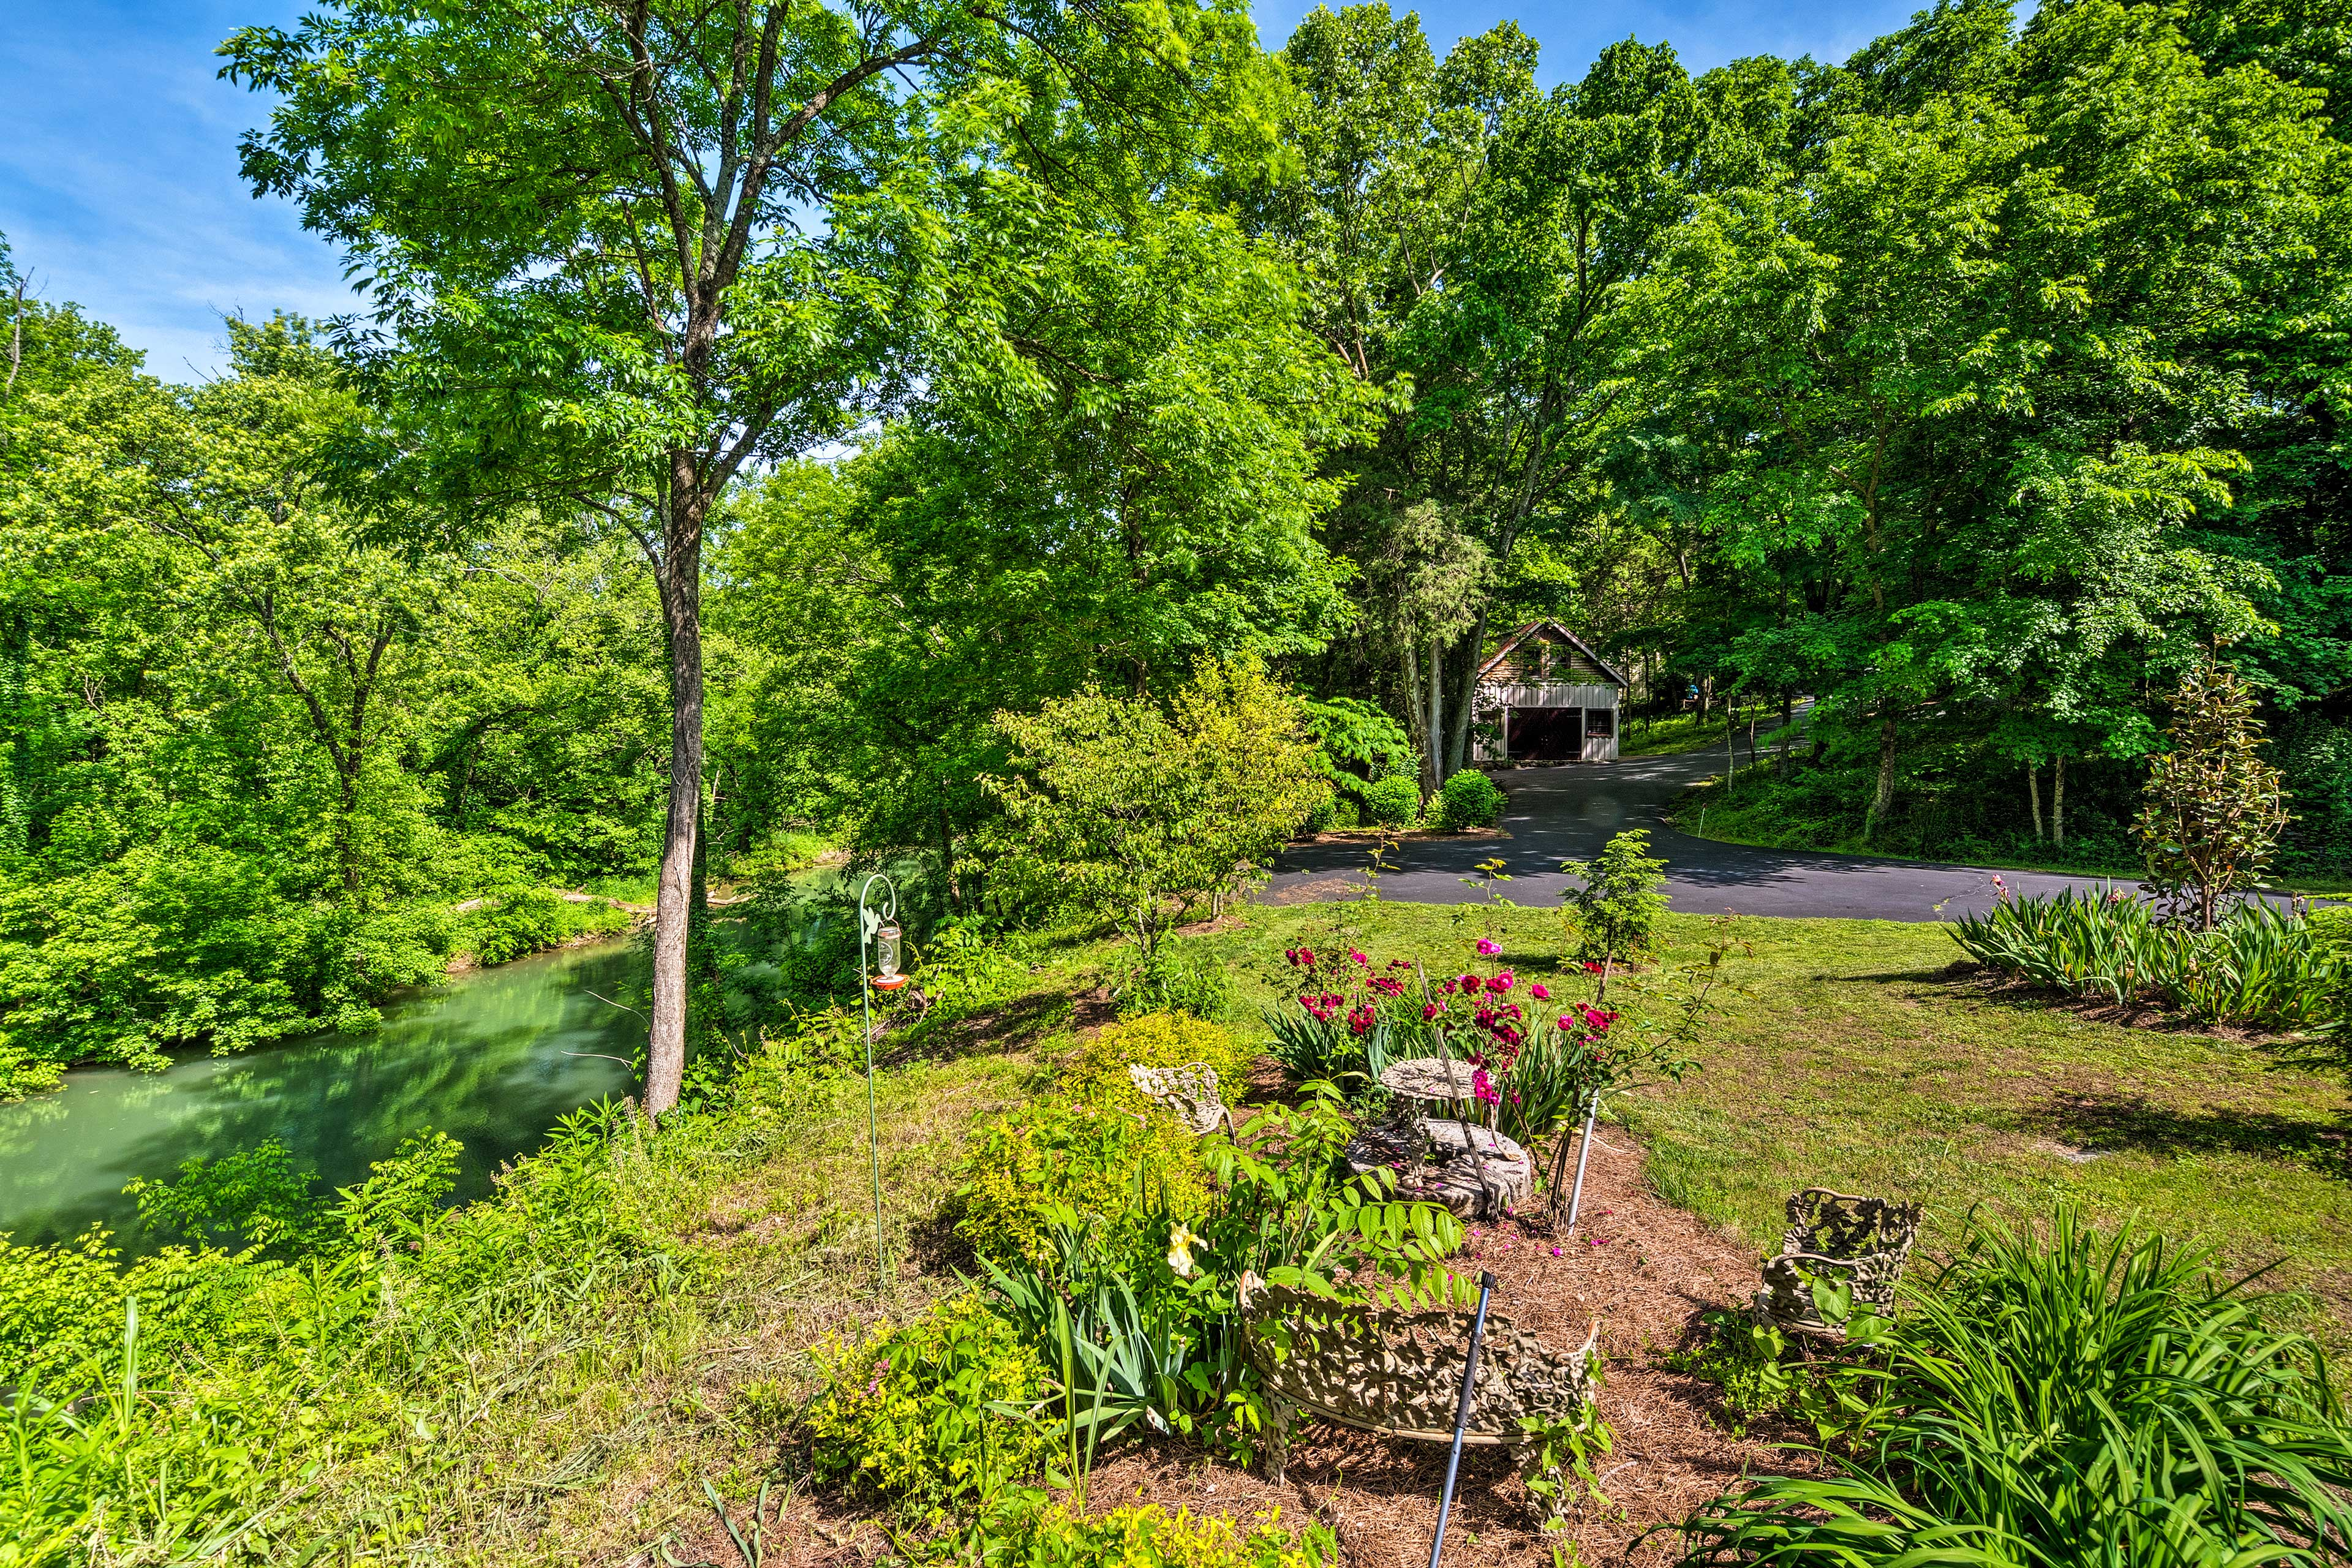 The beautiful outdoor space includes a garden, picnic table, and swinging bench.